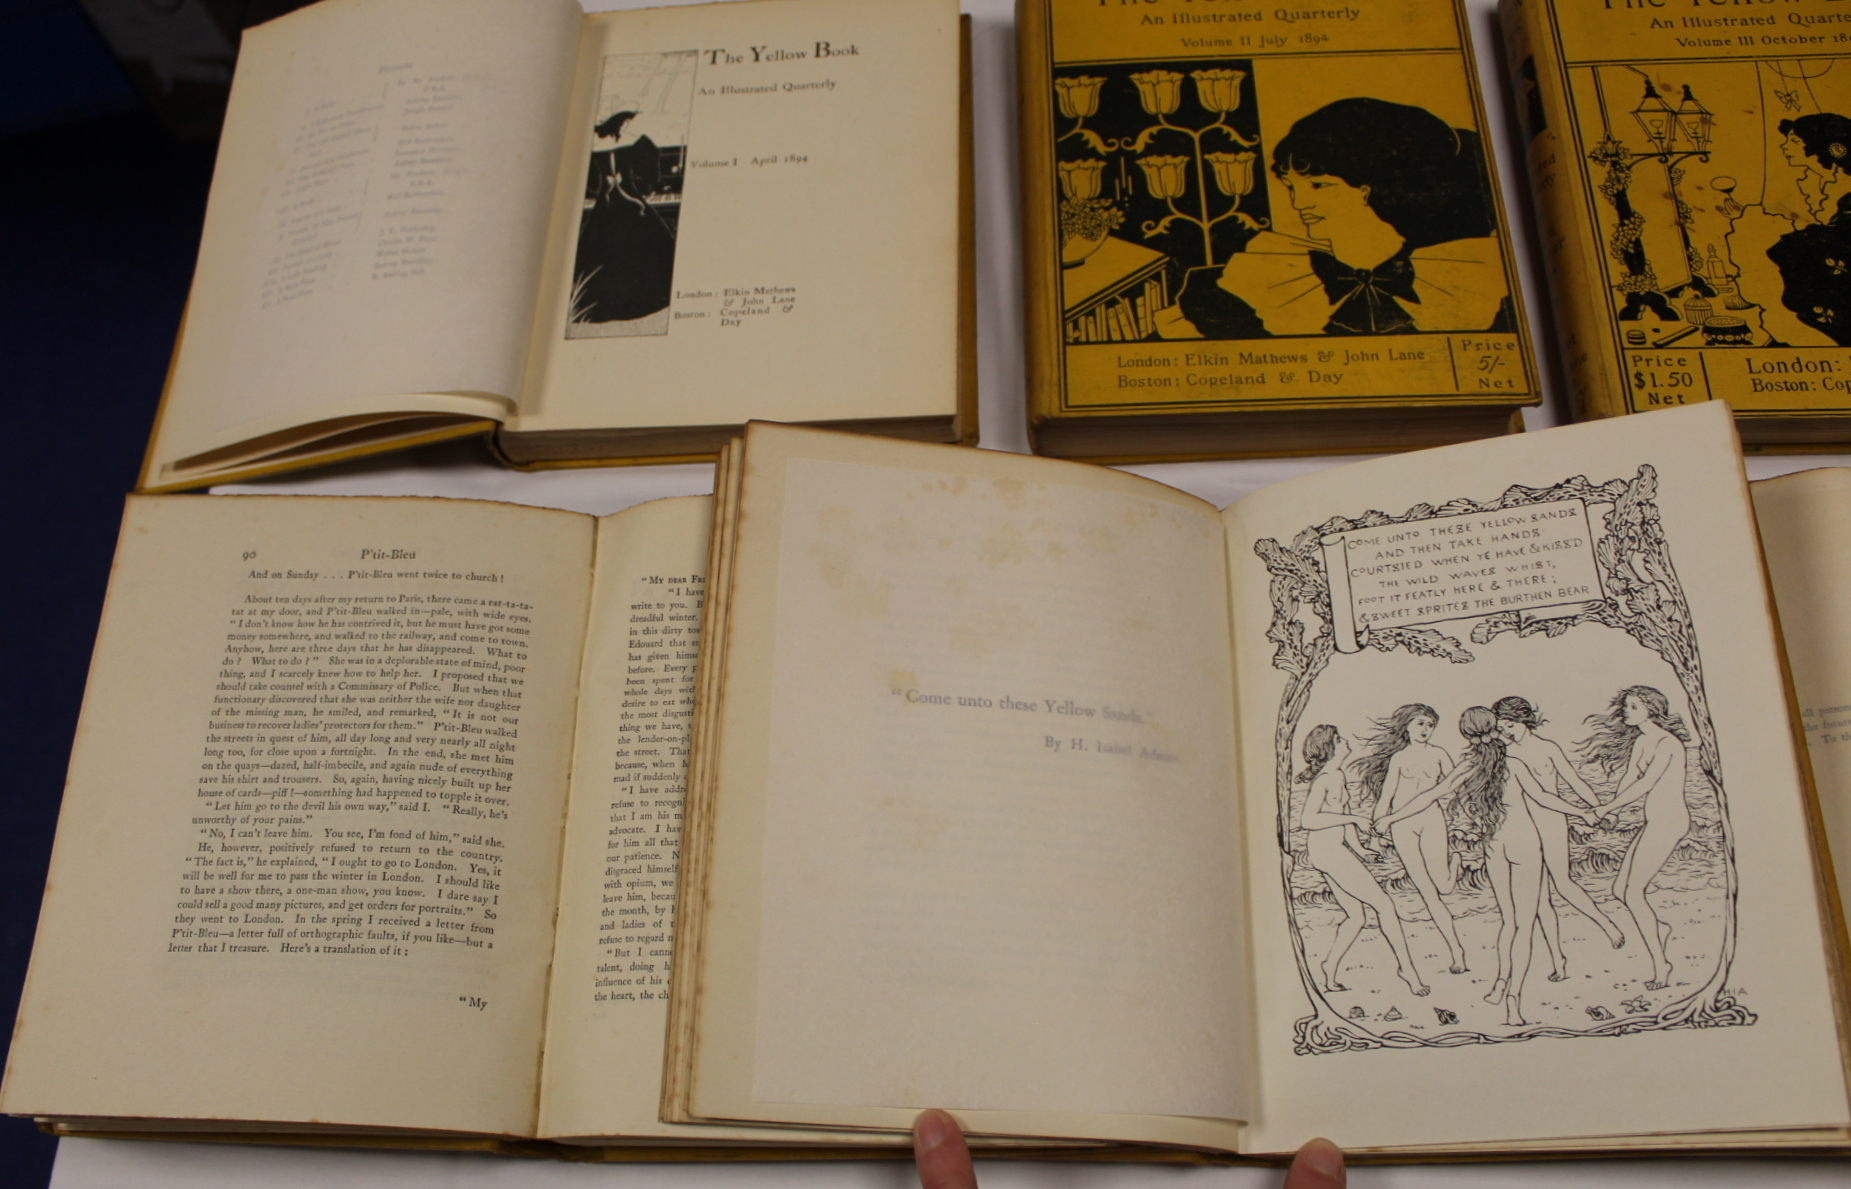 THE YELLOW BOOK.An Illustrated Quarterly. A set of 13 vols., many fine illus. Small quarto. - Image 12 of 45